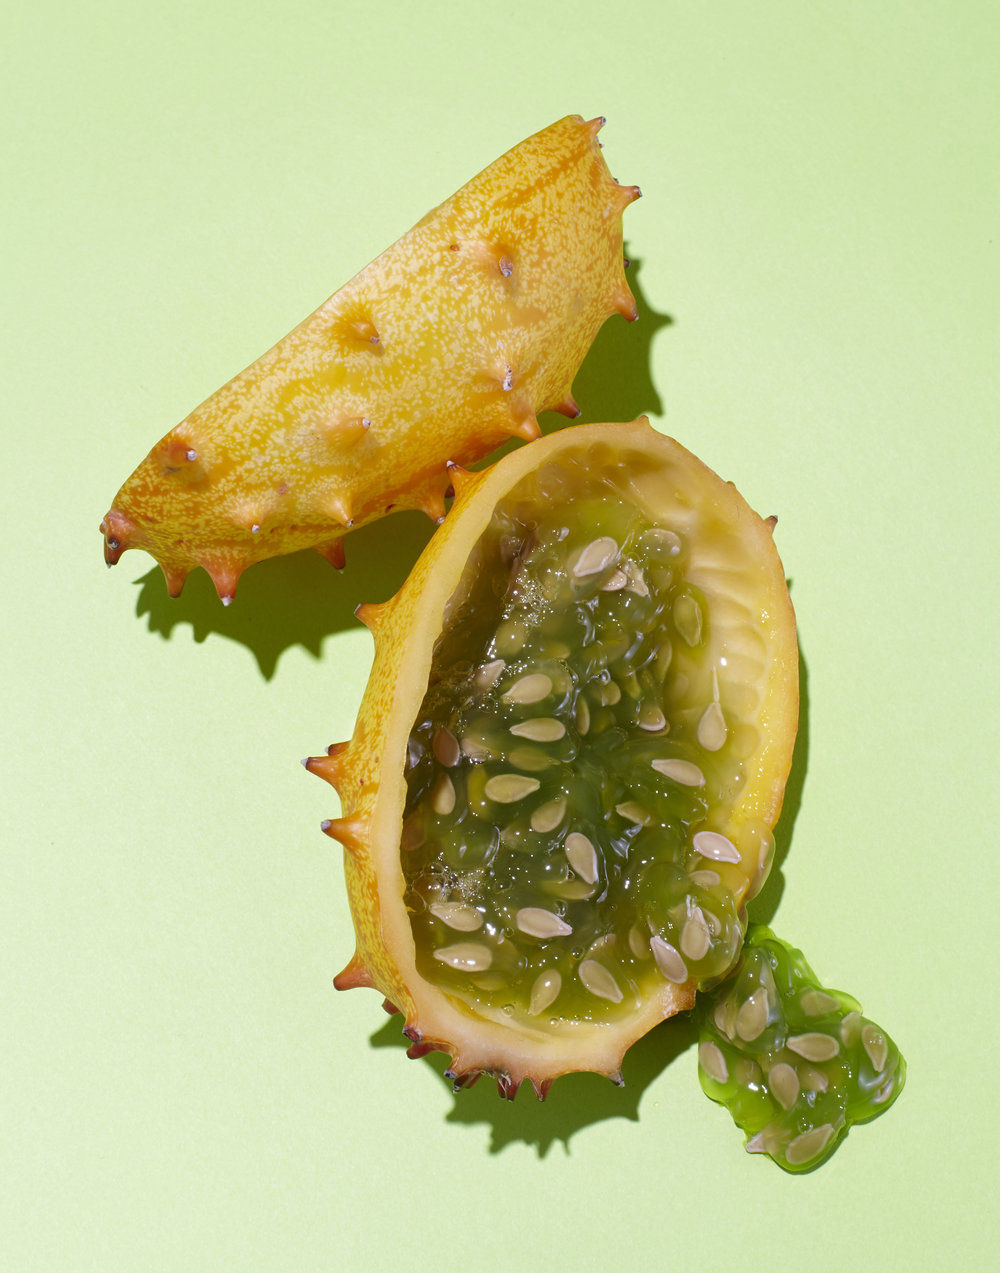 07_HORNED_FRUIT_052.jpg